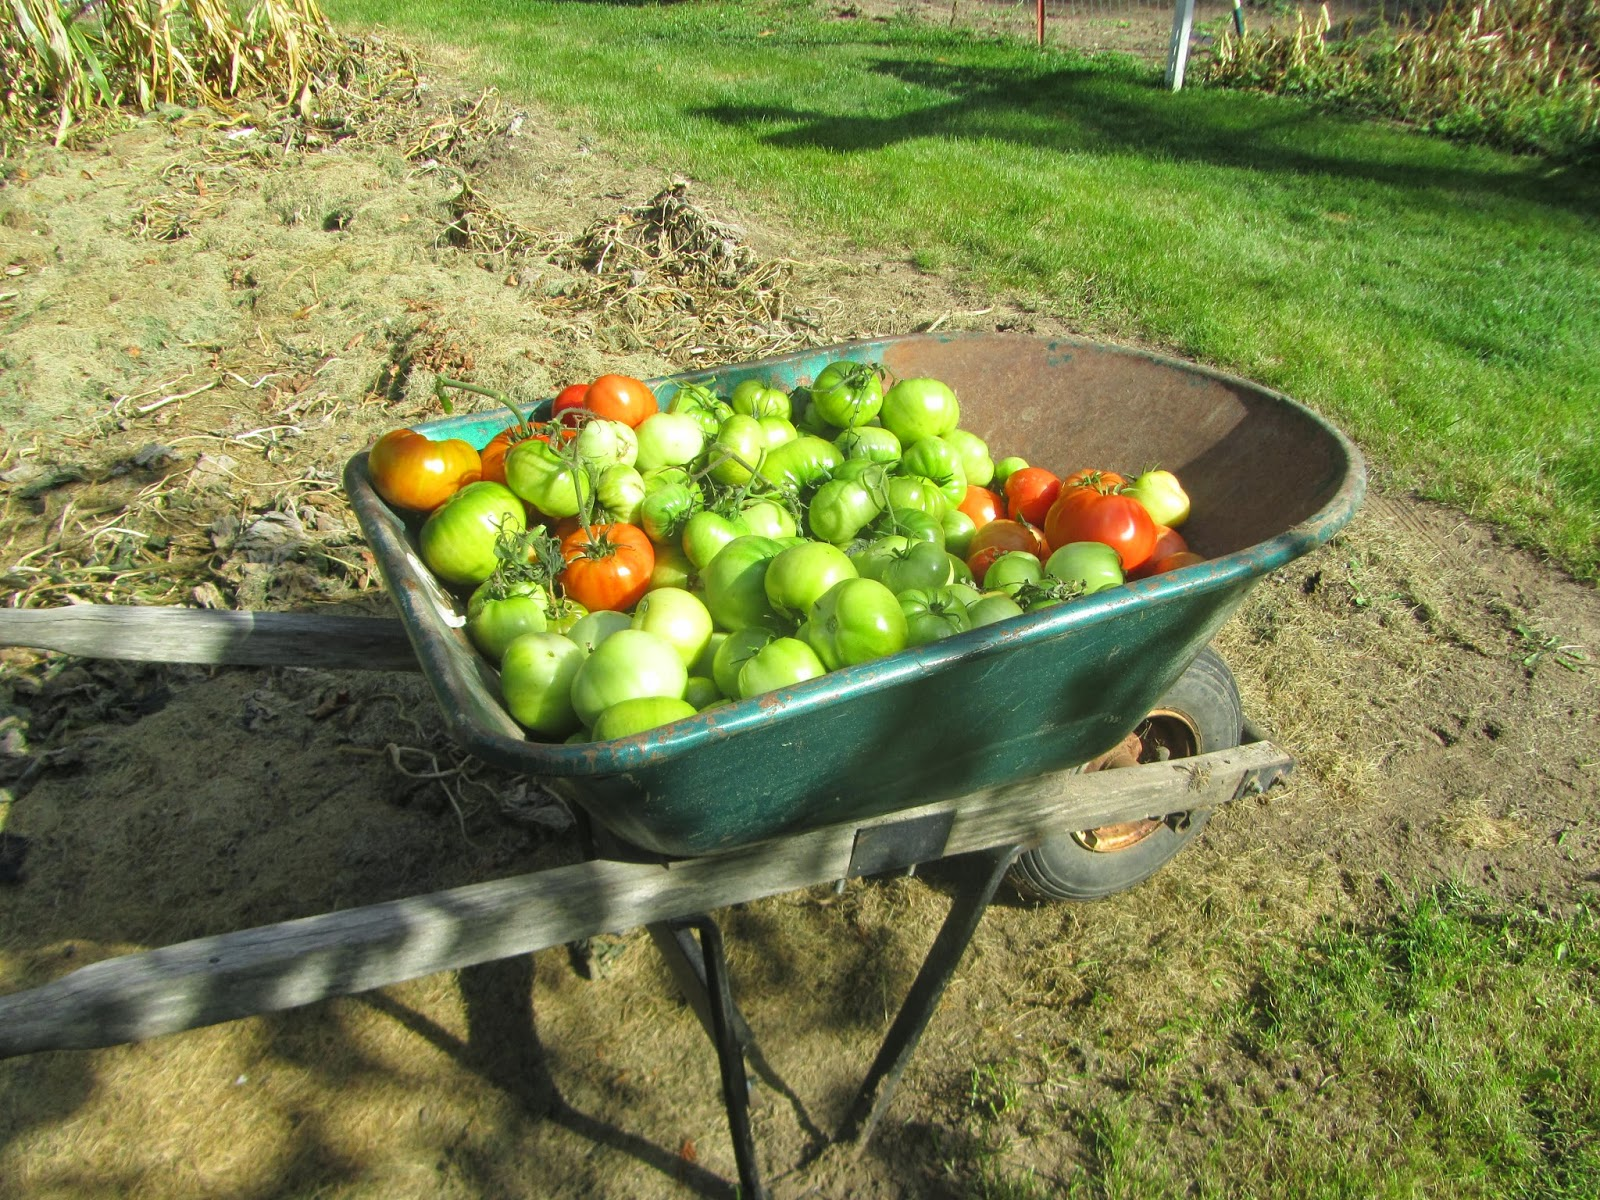 Wheel barrow full of red & green tomatoes